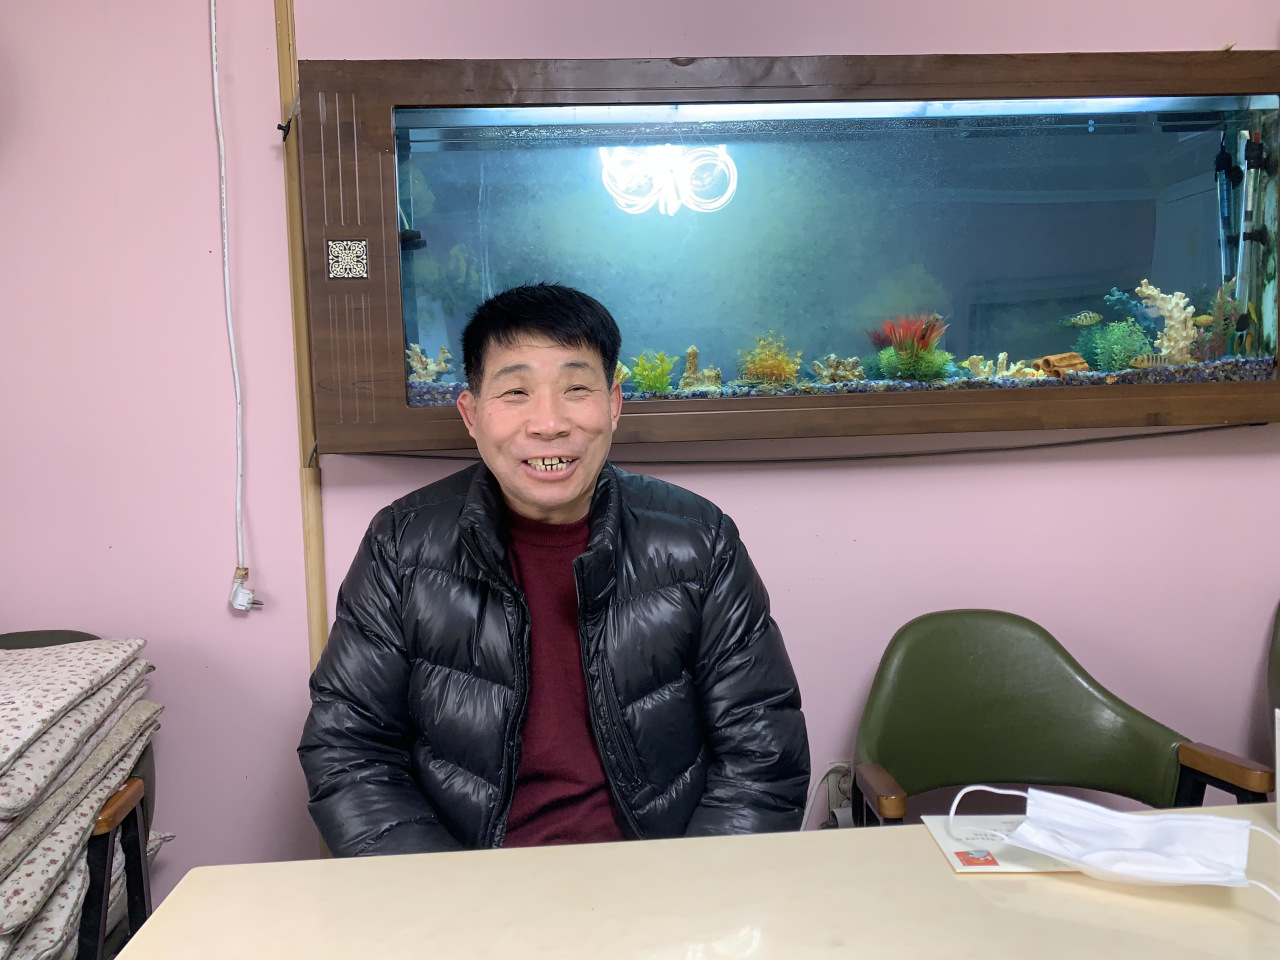 Yun speaks to The Korea Herald at a home for ex-convicts in Cheongju, North Chungcheong Province, Saturday. (Kim Arin/The Korea Herald)